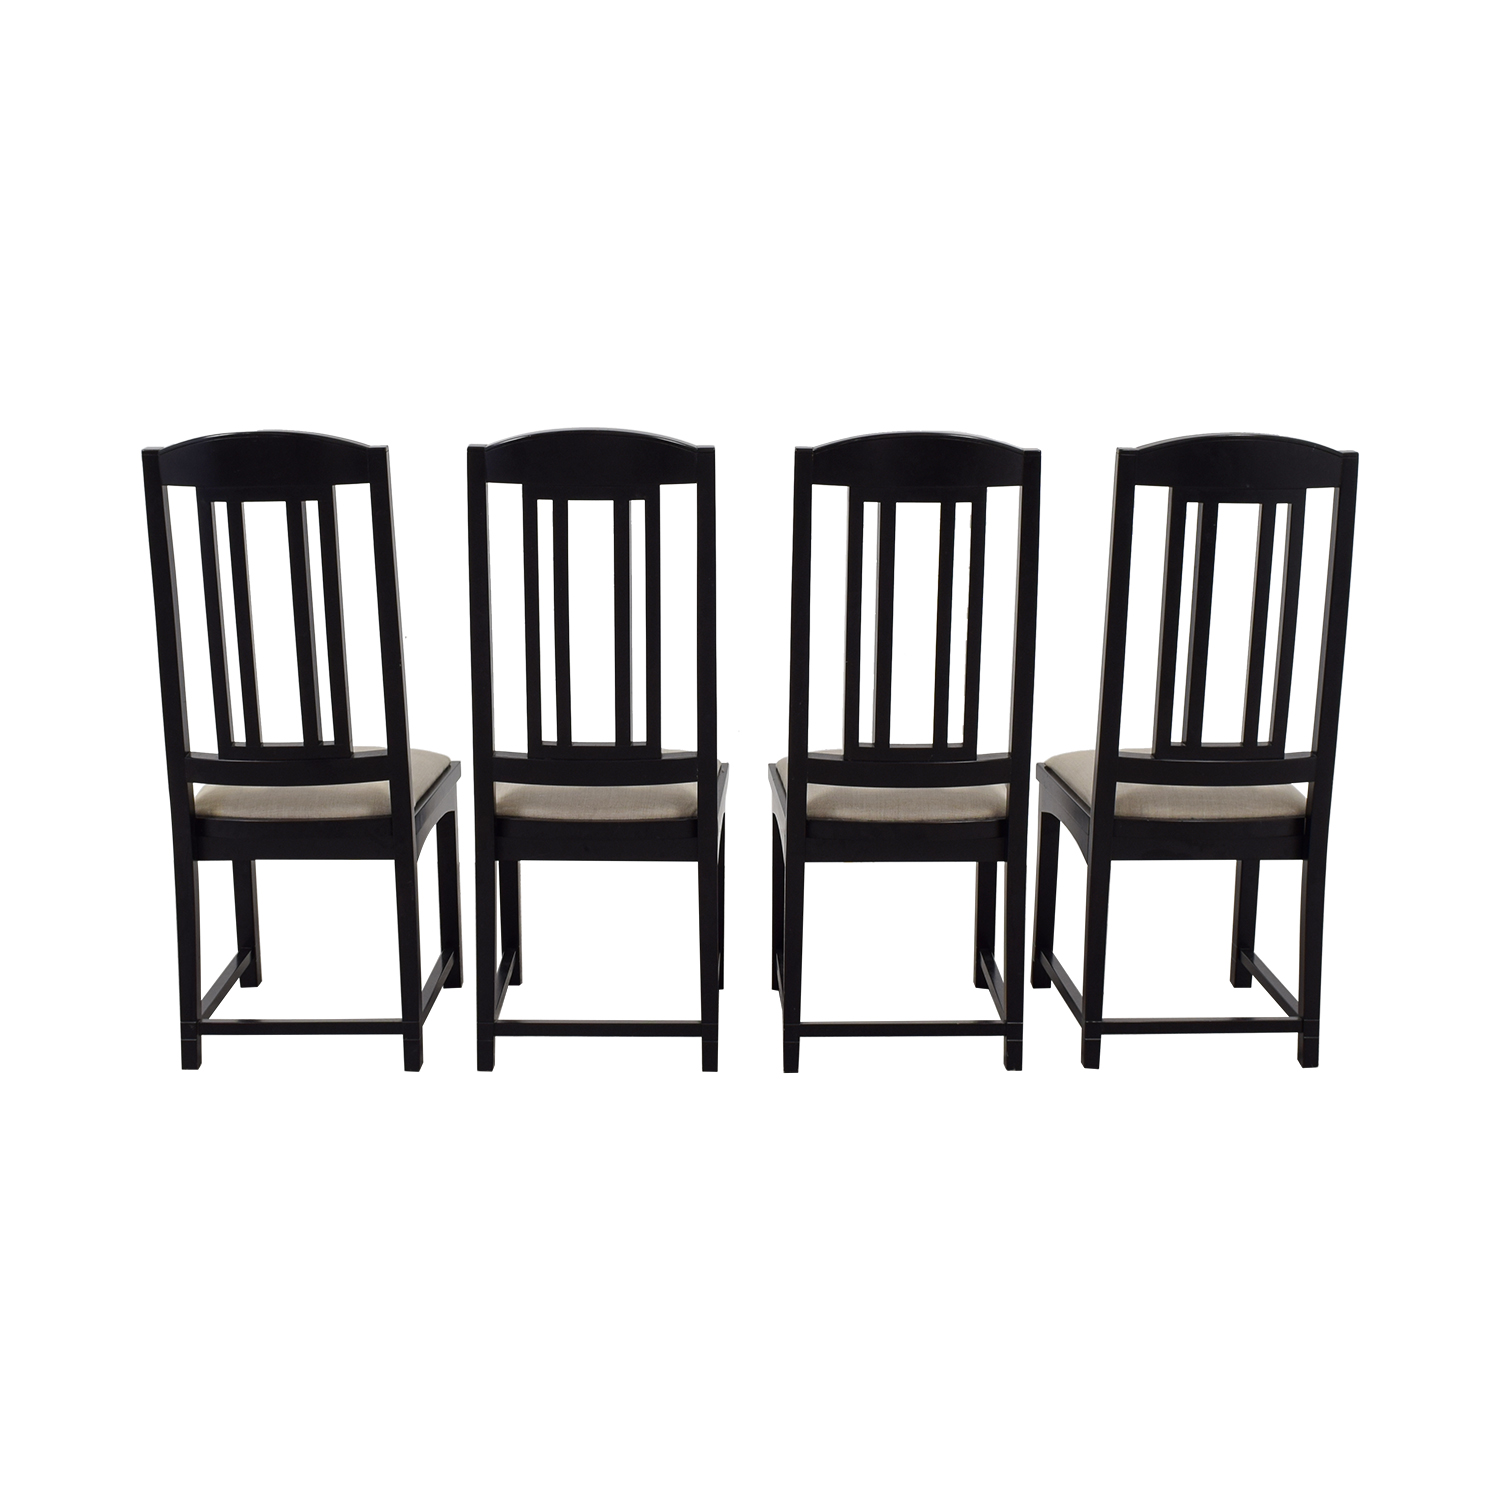 PACE Collection PACE Collection Beige Upholstered and Black Dining Chairs coupon